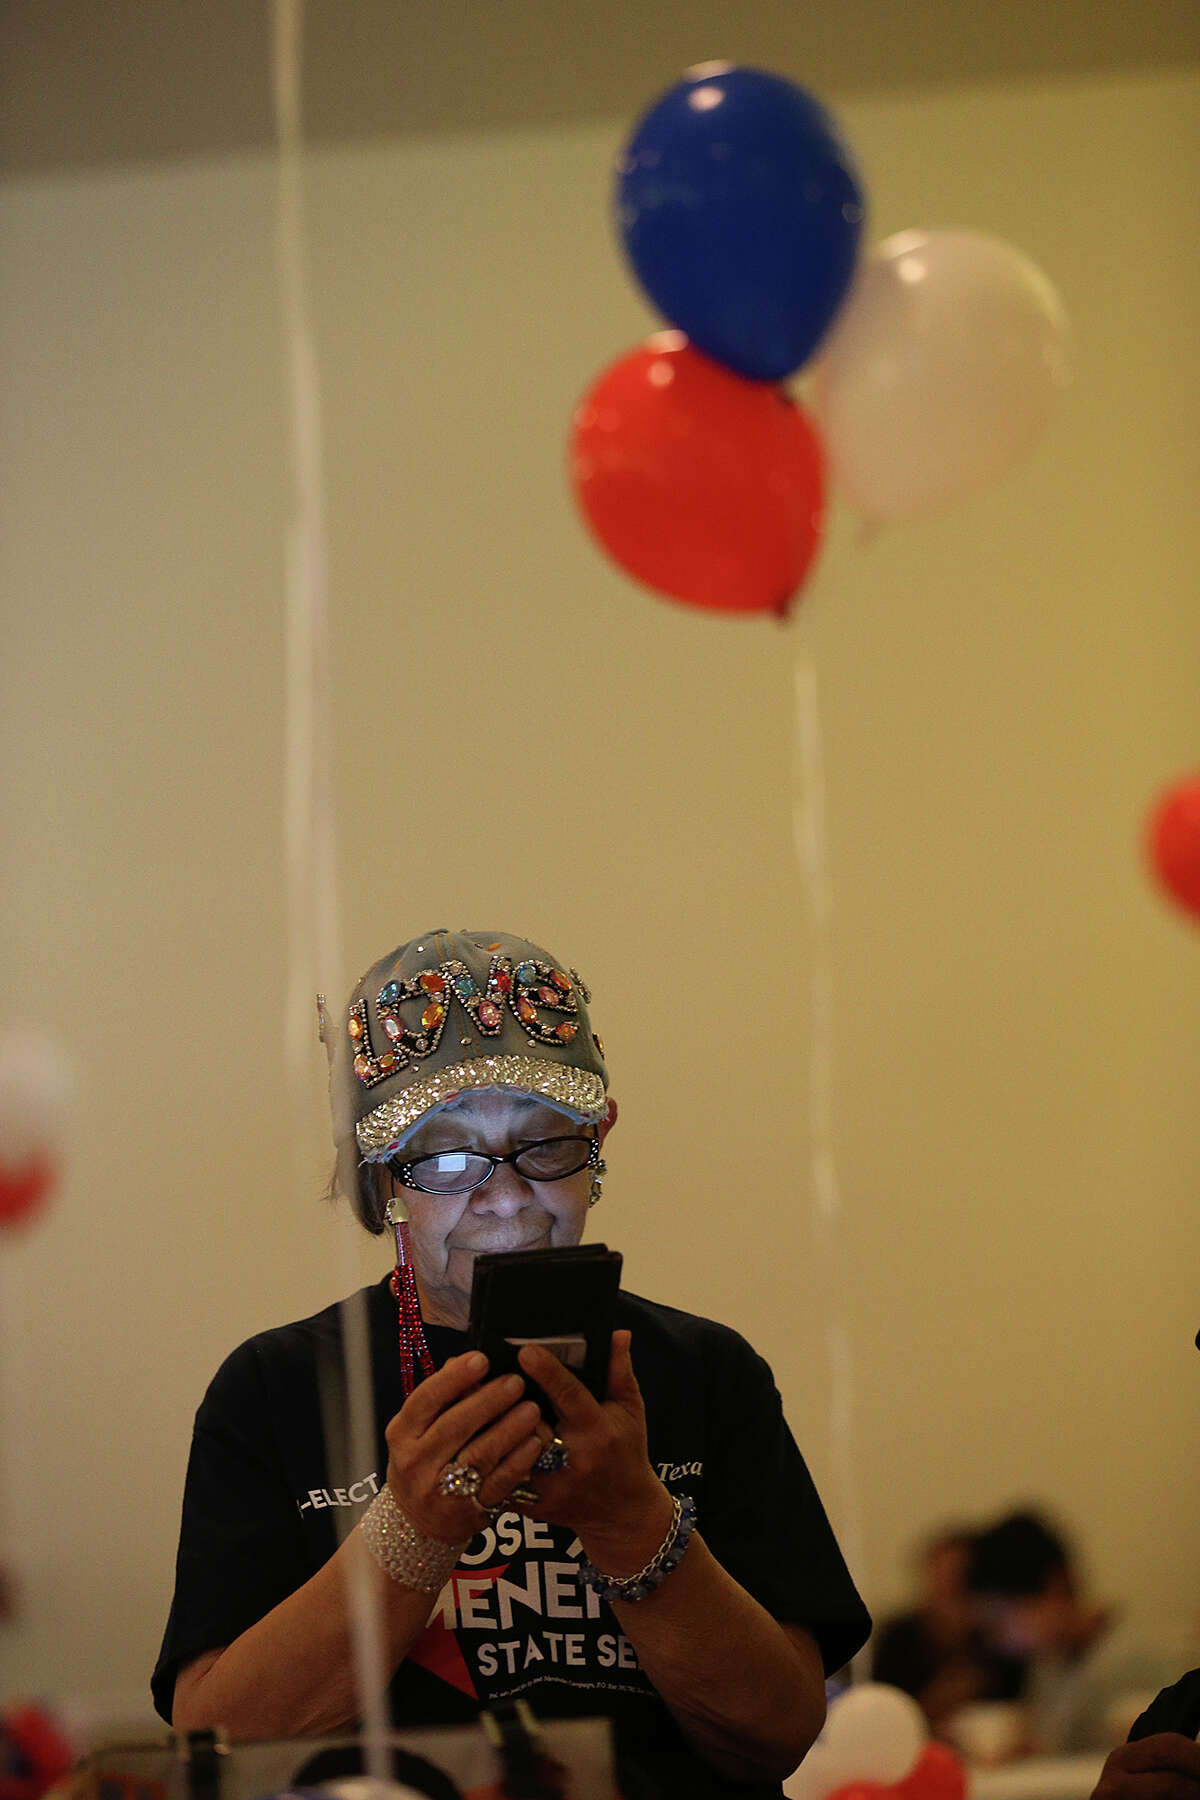 Mary Garcia checks on the results for the race between Texas State Senator Jose Menendez, (D-26) and challenger Trey Martinez-Fischer during a party at the San Antonio Fire Fighters Union Hall, Tuesday, March 1, 2016. Menendez was up with almost 55-percent with Martinez-Fischer at 45-percent in early voting results.